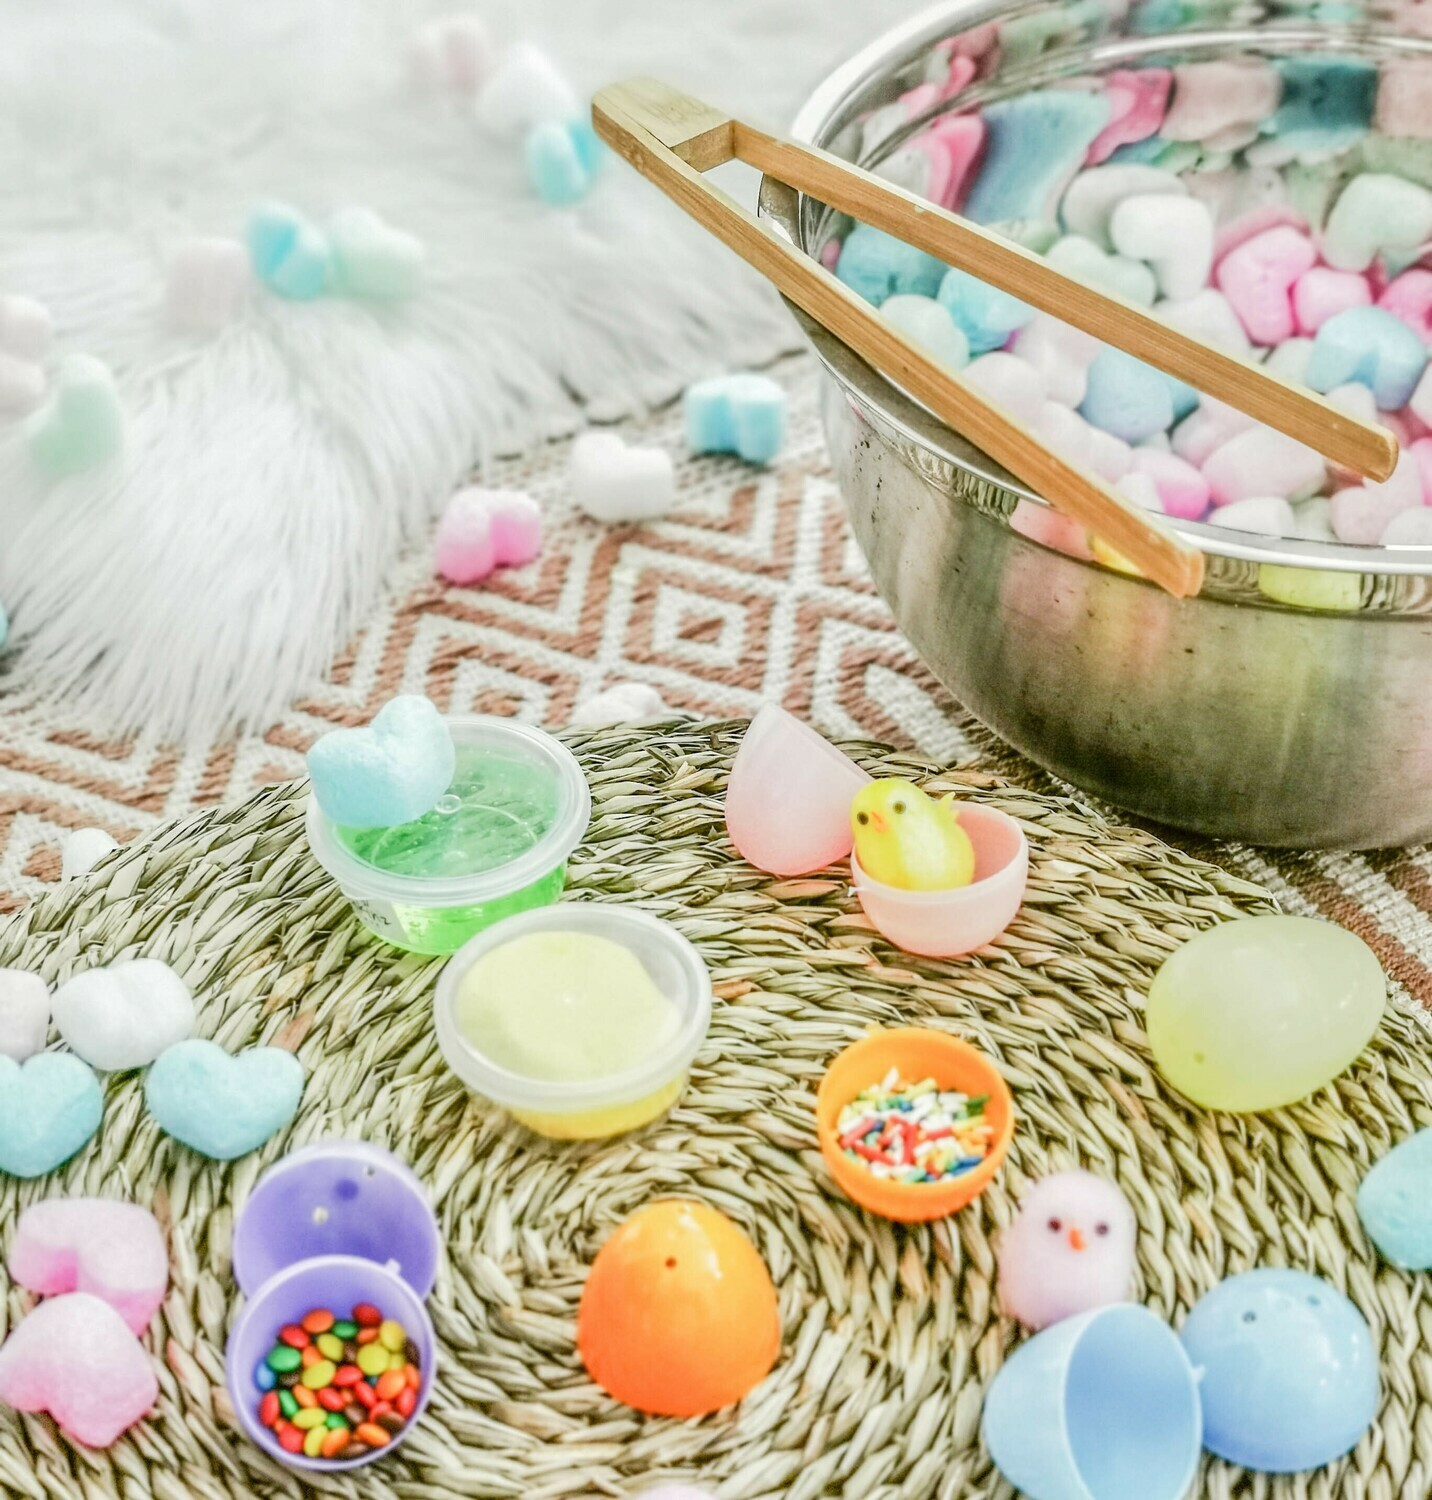 Find the Egg Sensory Play